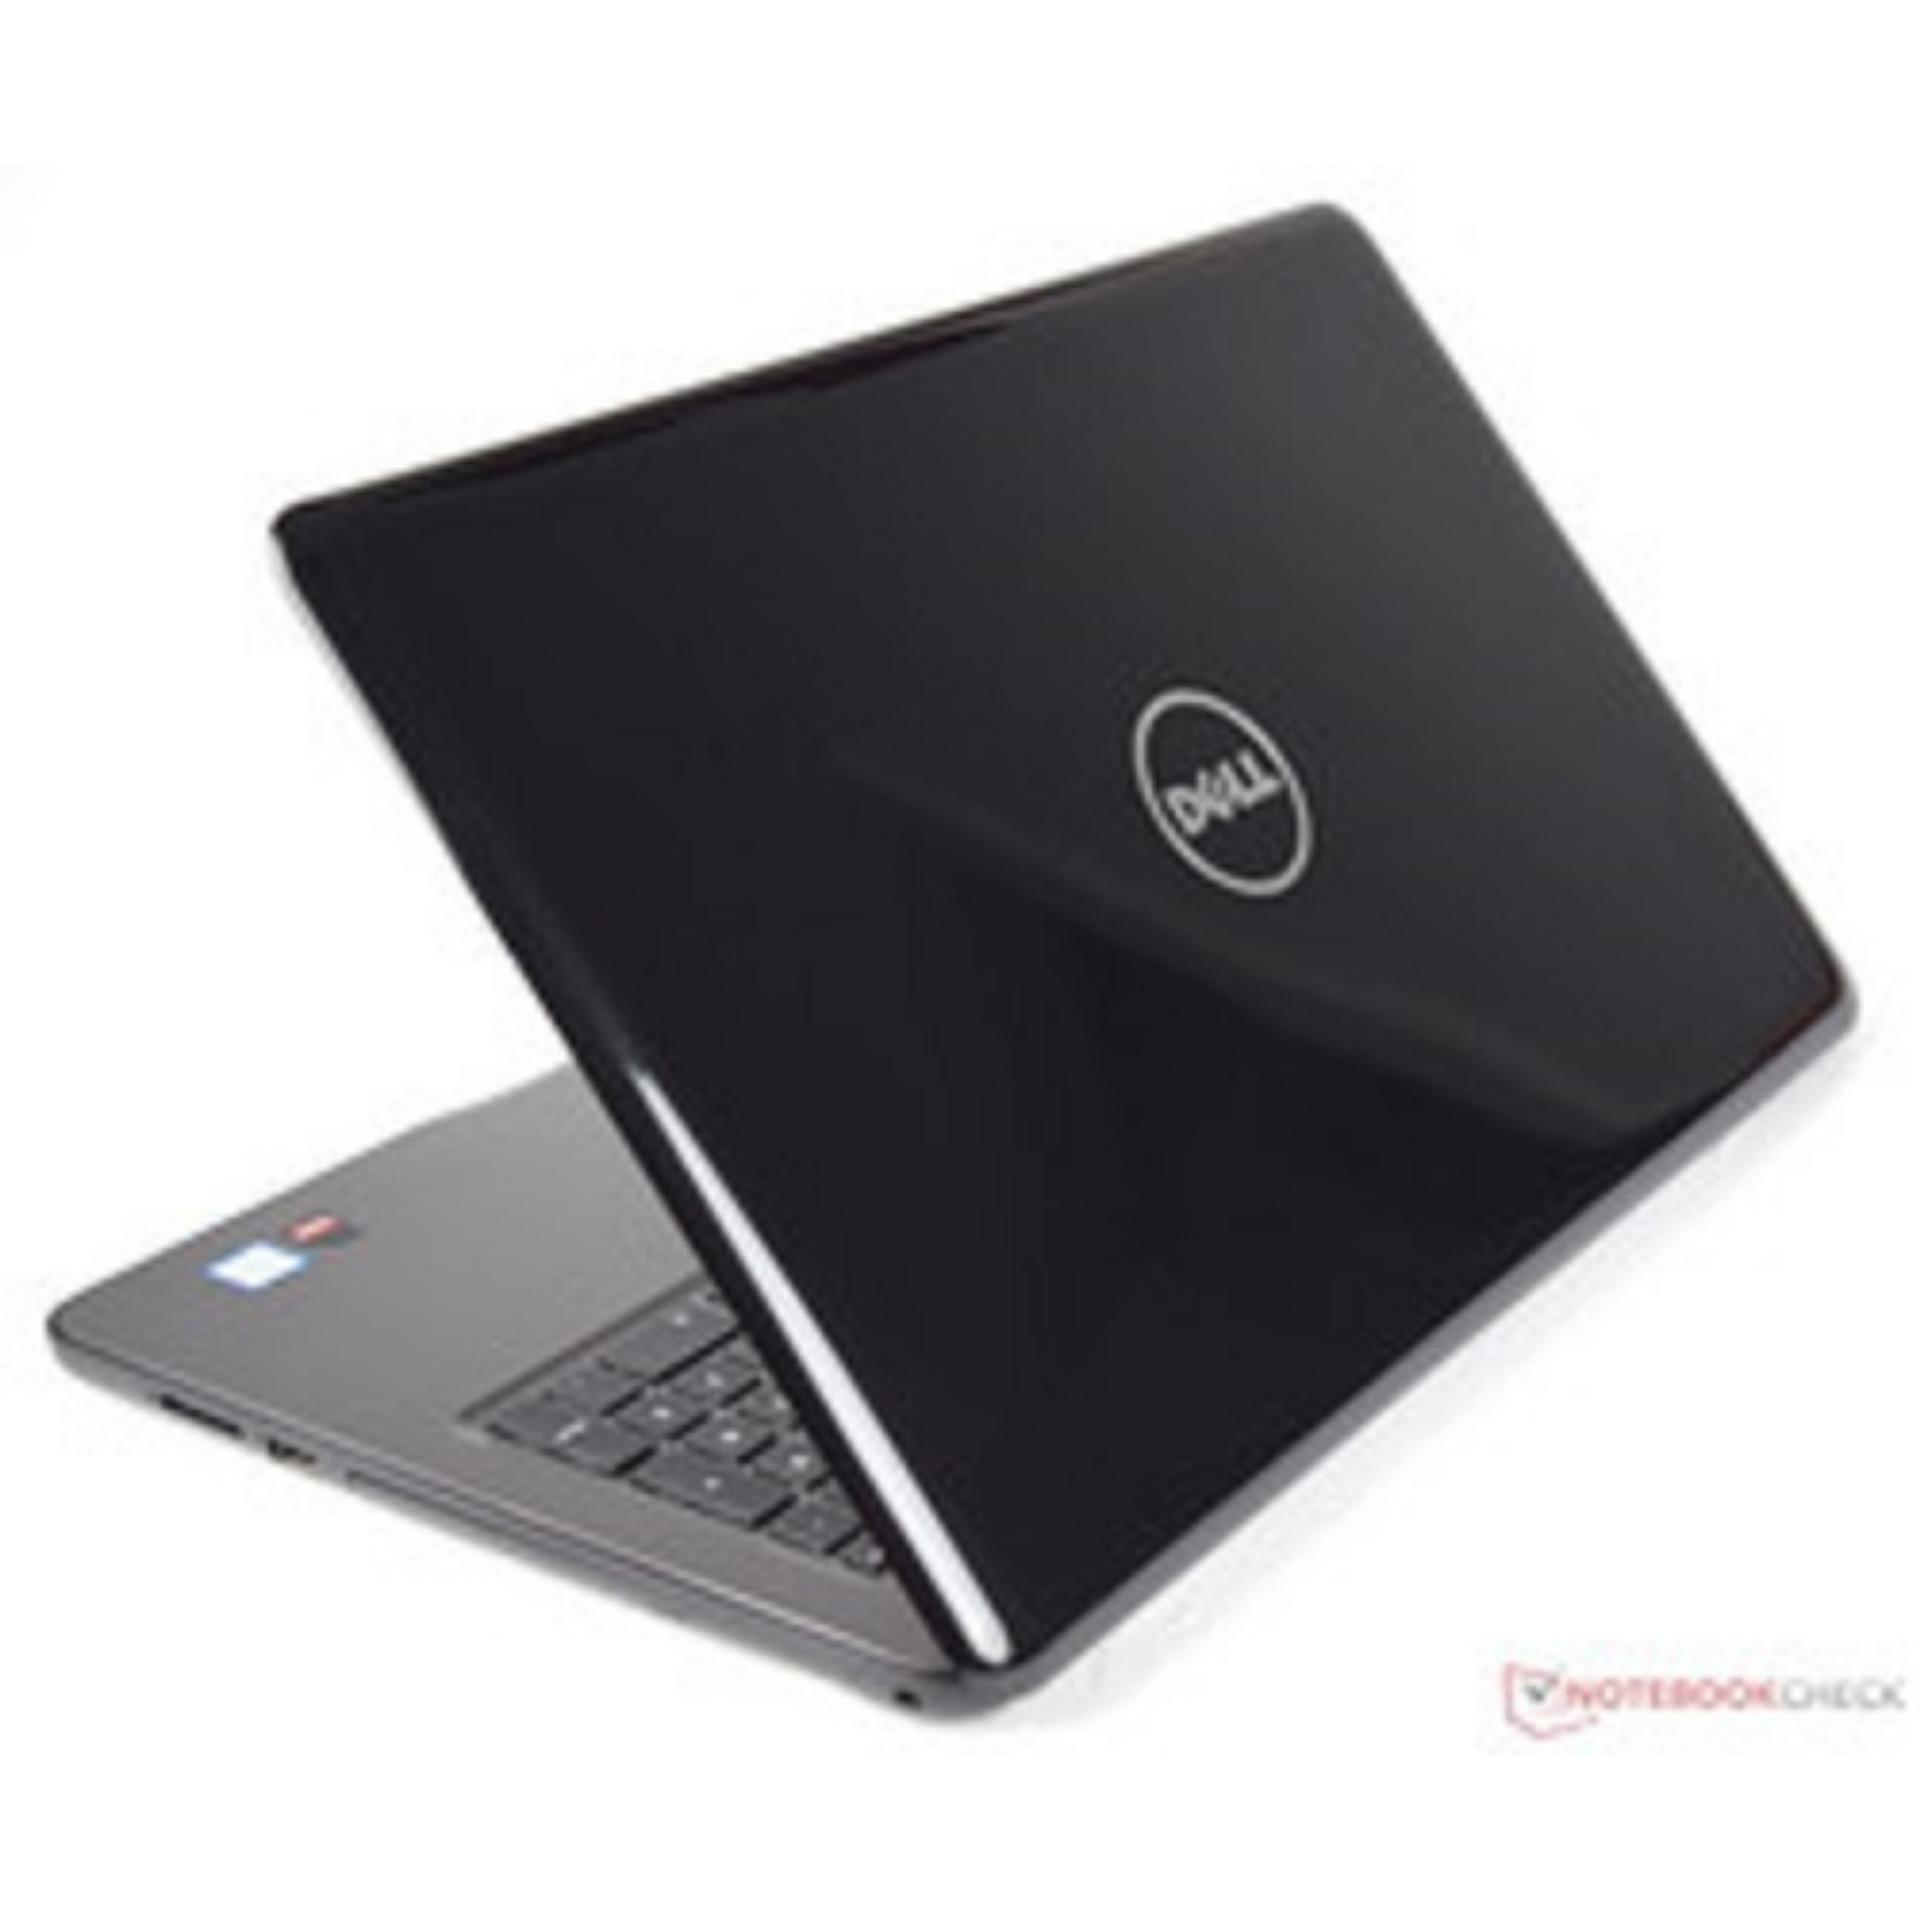 New Inspiron 15 3000 series 3567 7th Gen i7 7500U 4M Cache up to 3.5 GHz 8GB RAM 1TB AMD Radeon R5 M430 Graphics with 2GB DDR3 15 inch display Windows10H HE 64bit English LCD Back Cover for Black